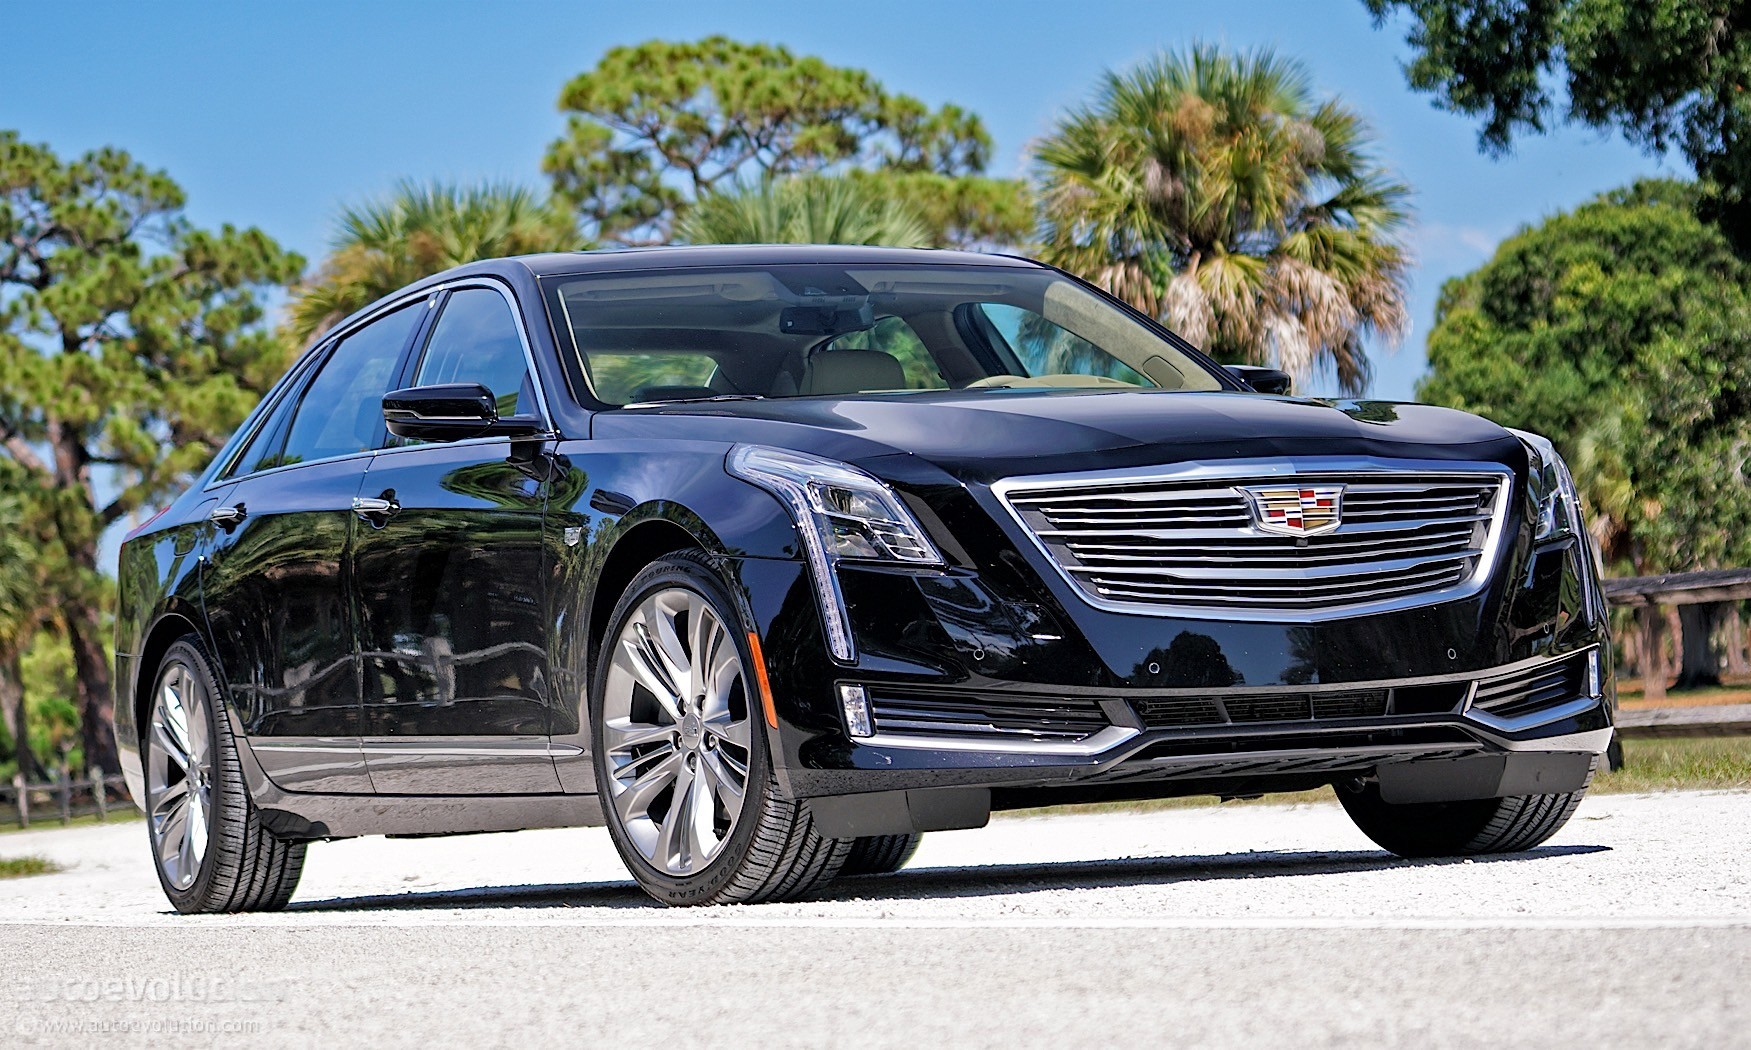 Converted Mg additionally Cadillac Series Coupe For Sale X likewise Cadillac Planning New Flagship It Won T Be A Sedan likewise Cadillac Ats V Coupe furthermore Cadillac Cts V To Get Supercharged V Engine Photo Gallery. on 2016 cadillac cts v sedan